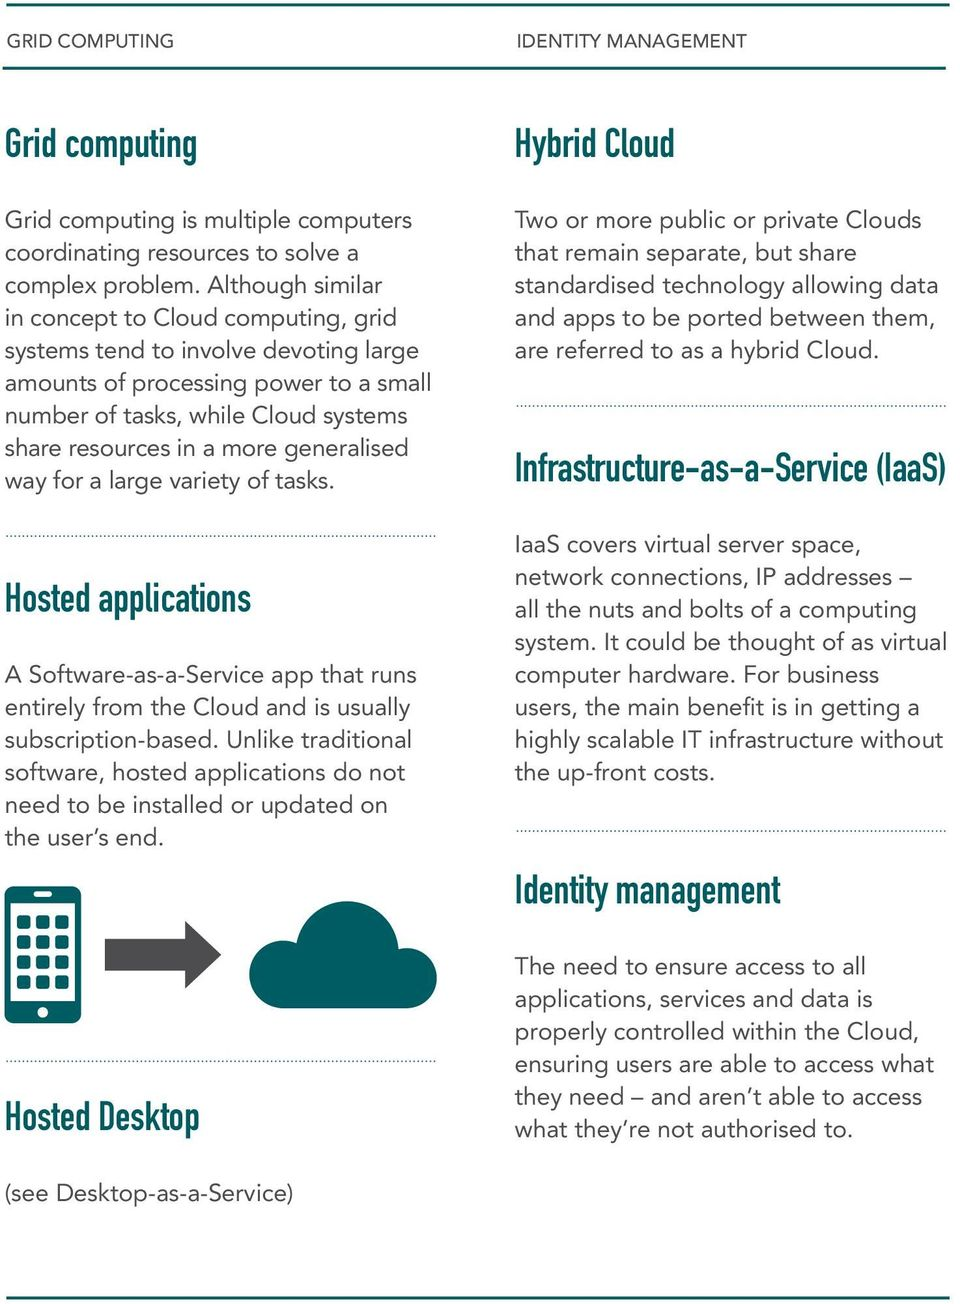 generalised way for a large variety of tasks. Hosted applications A Software-as-a-Service app that runs entirely from the Cloud and is usually subscription-based.